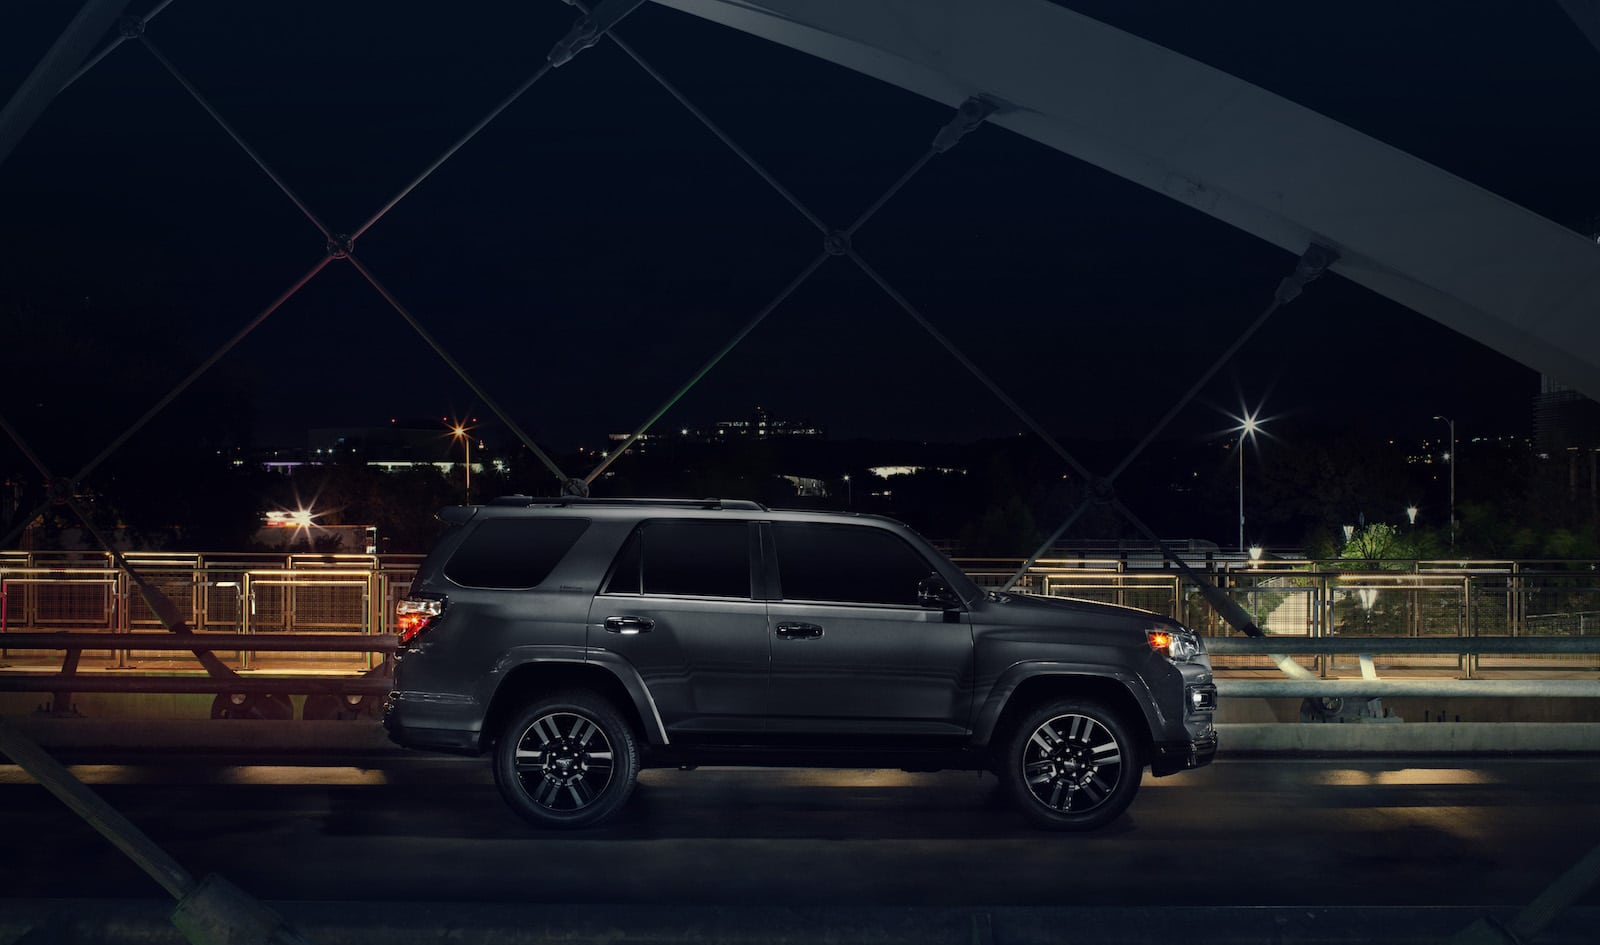 Toyota Shows Off Its Magnificent Seven Near The